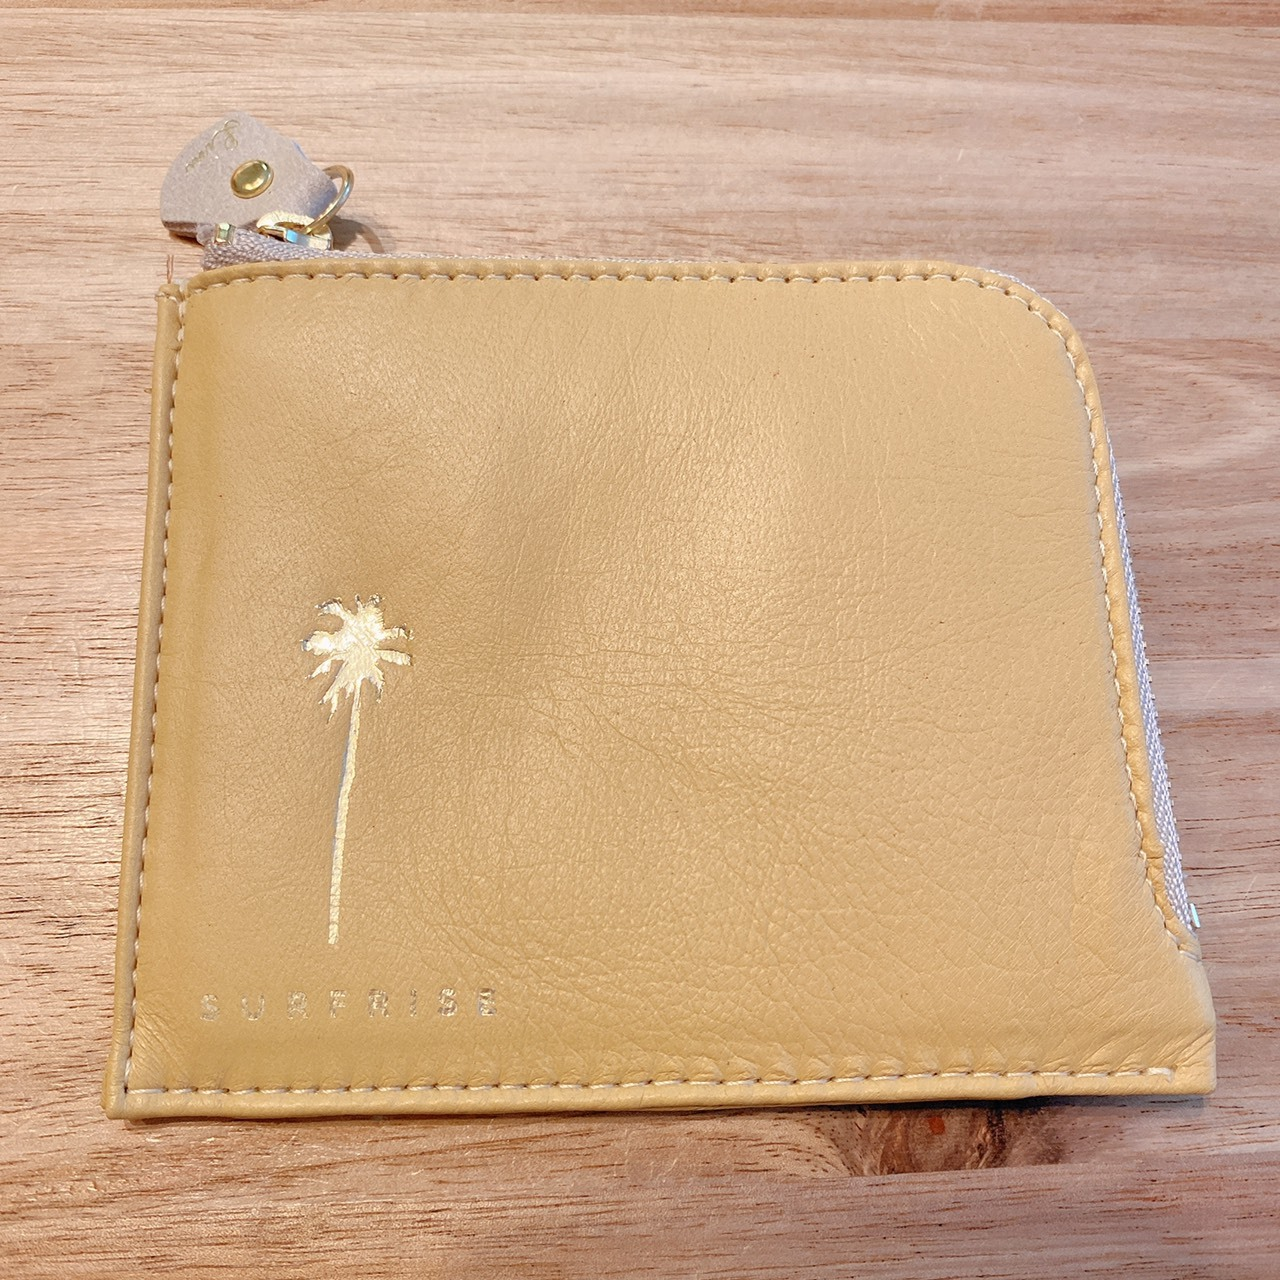 Mini wallet - Misted Yellow